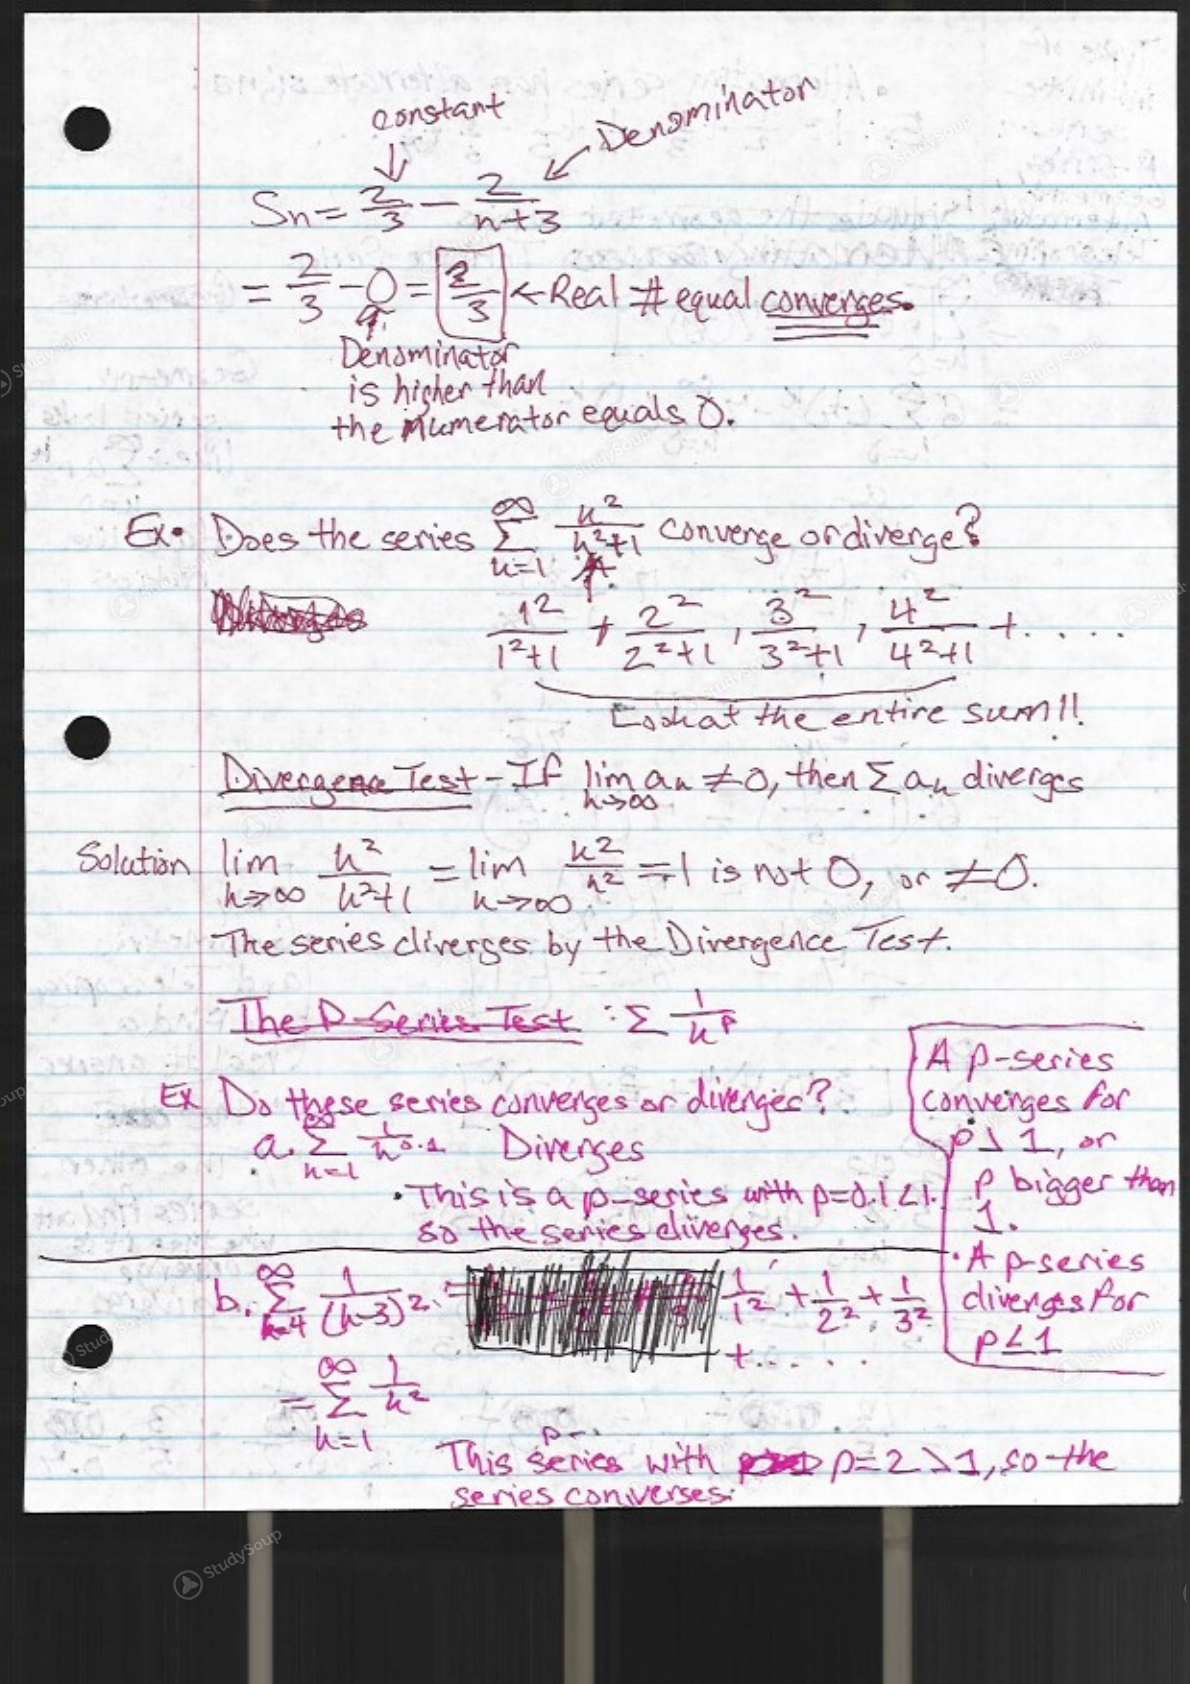 OleMiss - MATH 263 - Calculus 3 Test 1 Study Guide - Study